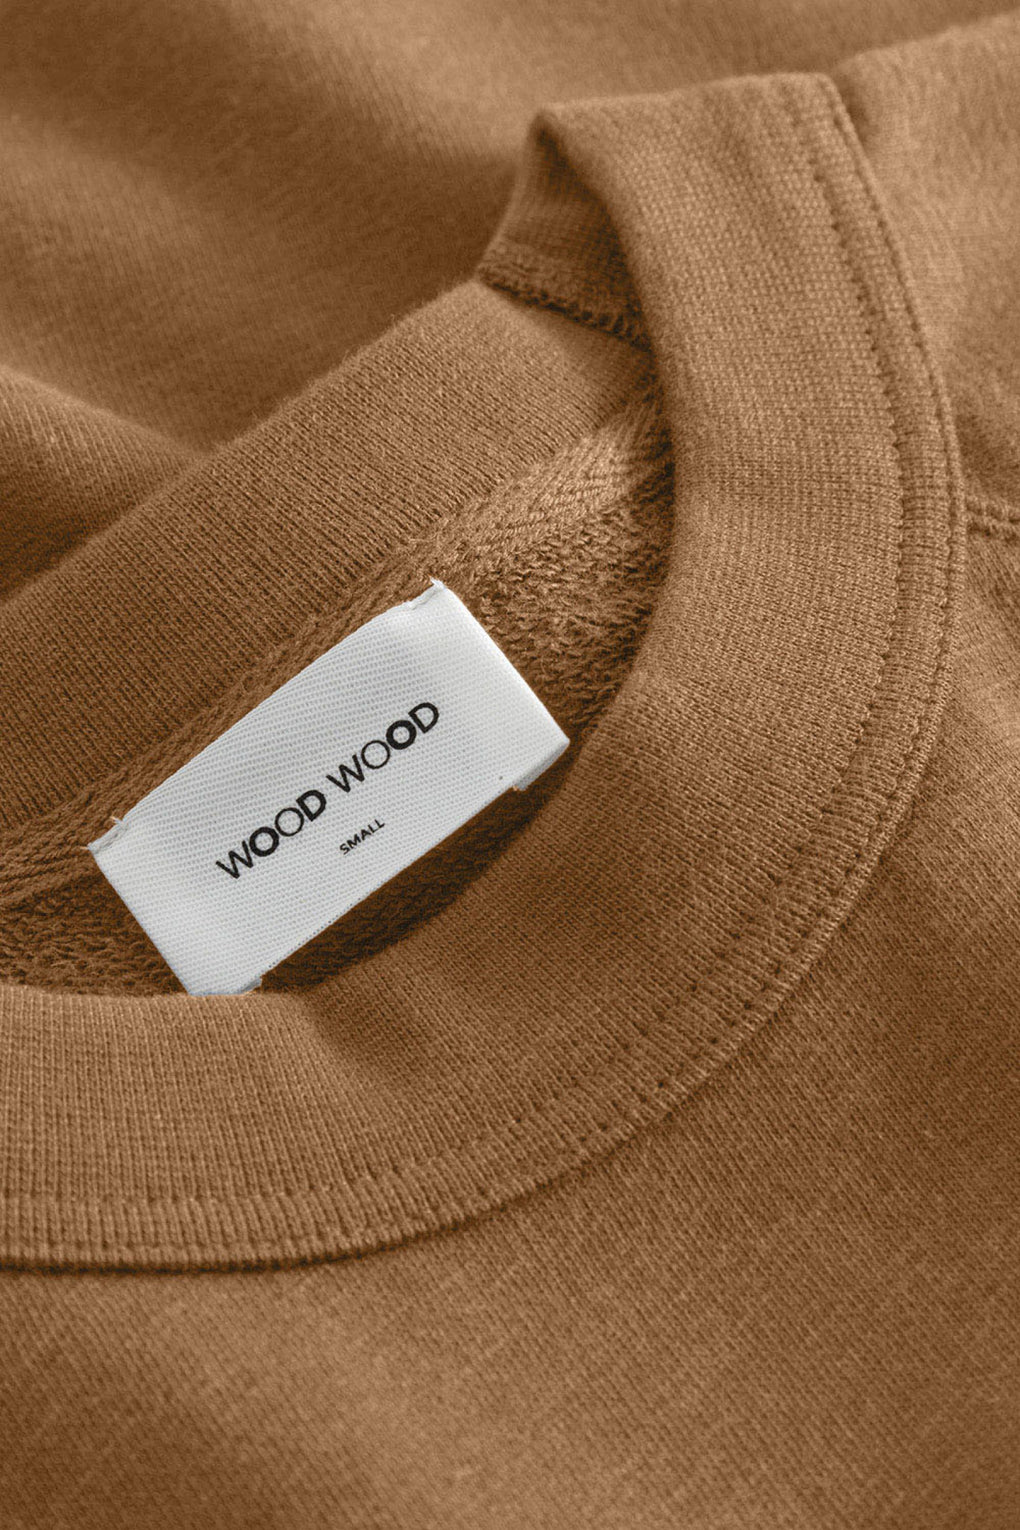 Wood Wood - Hope sweatshirt - Idun - St. Paul - brown sweatshirt